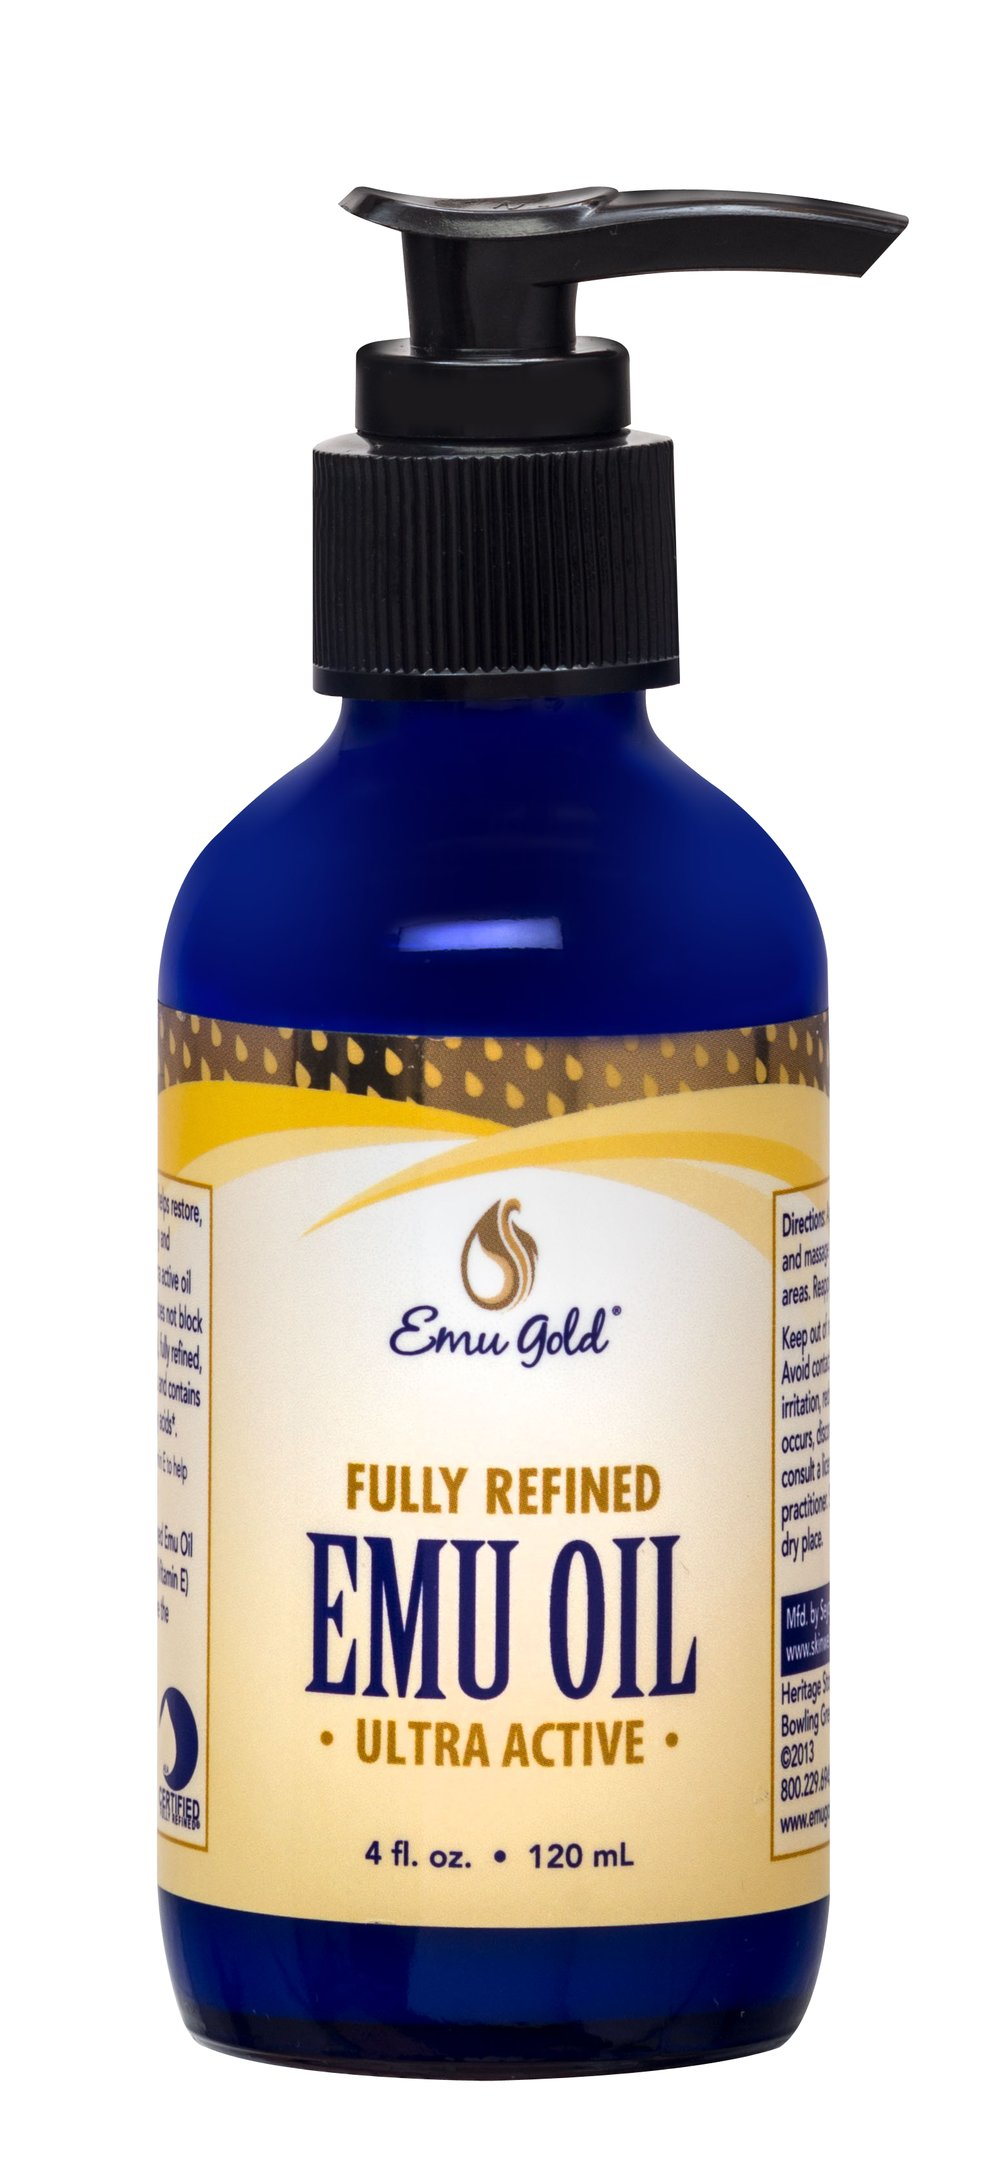 Emu Oil 100% Natural <p><strong>From the Manufacturer's Label:</strong></p><p>Emu Oil 100% Natural is manufactured by Emu Gold®.</p> 4 oz Oil  $29.99